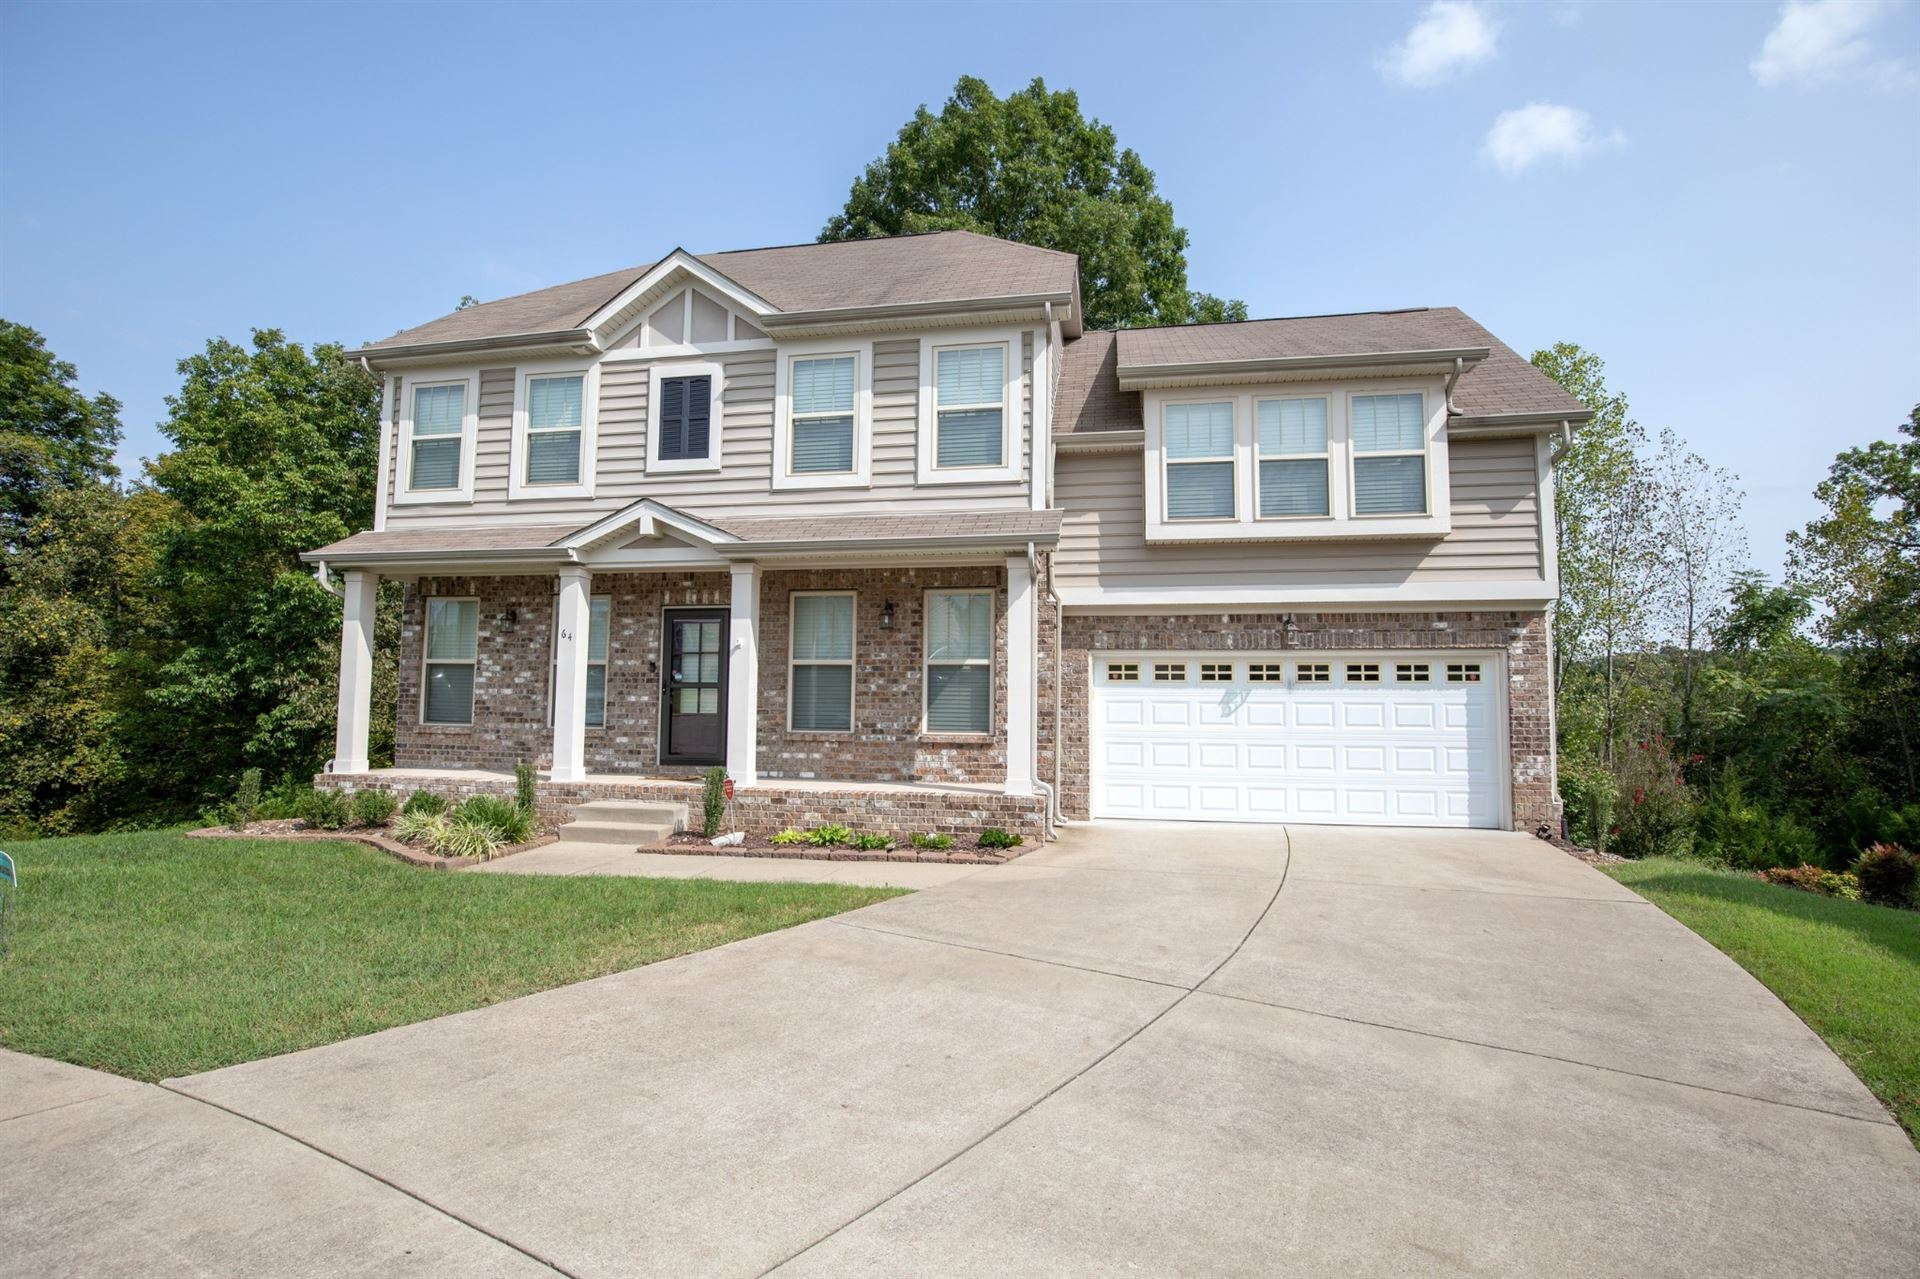 64 Villa Way, Hendersonville, TN 37075 - MLS#: 2189674